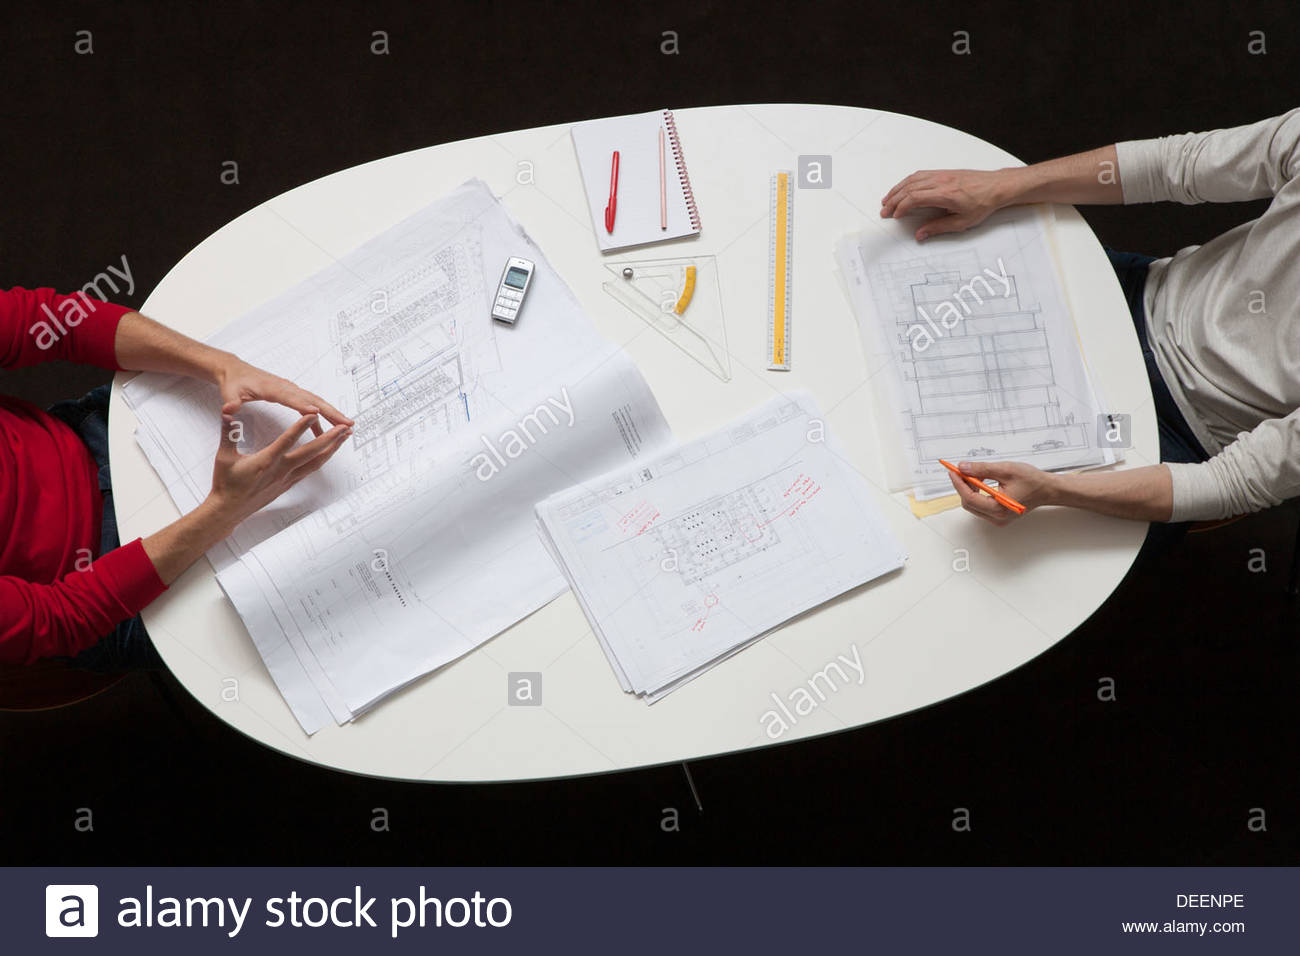 Two businessmen at a table with drafts and paperwork - Stock Image